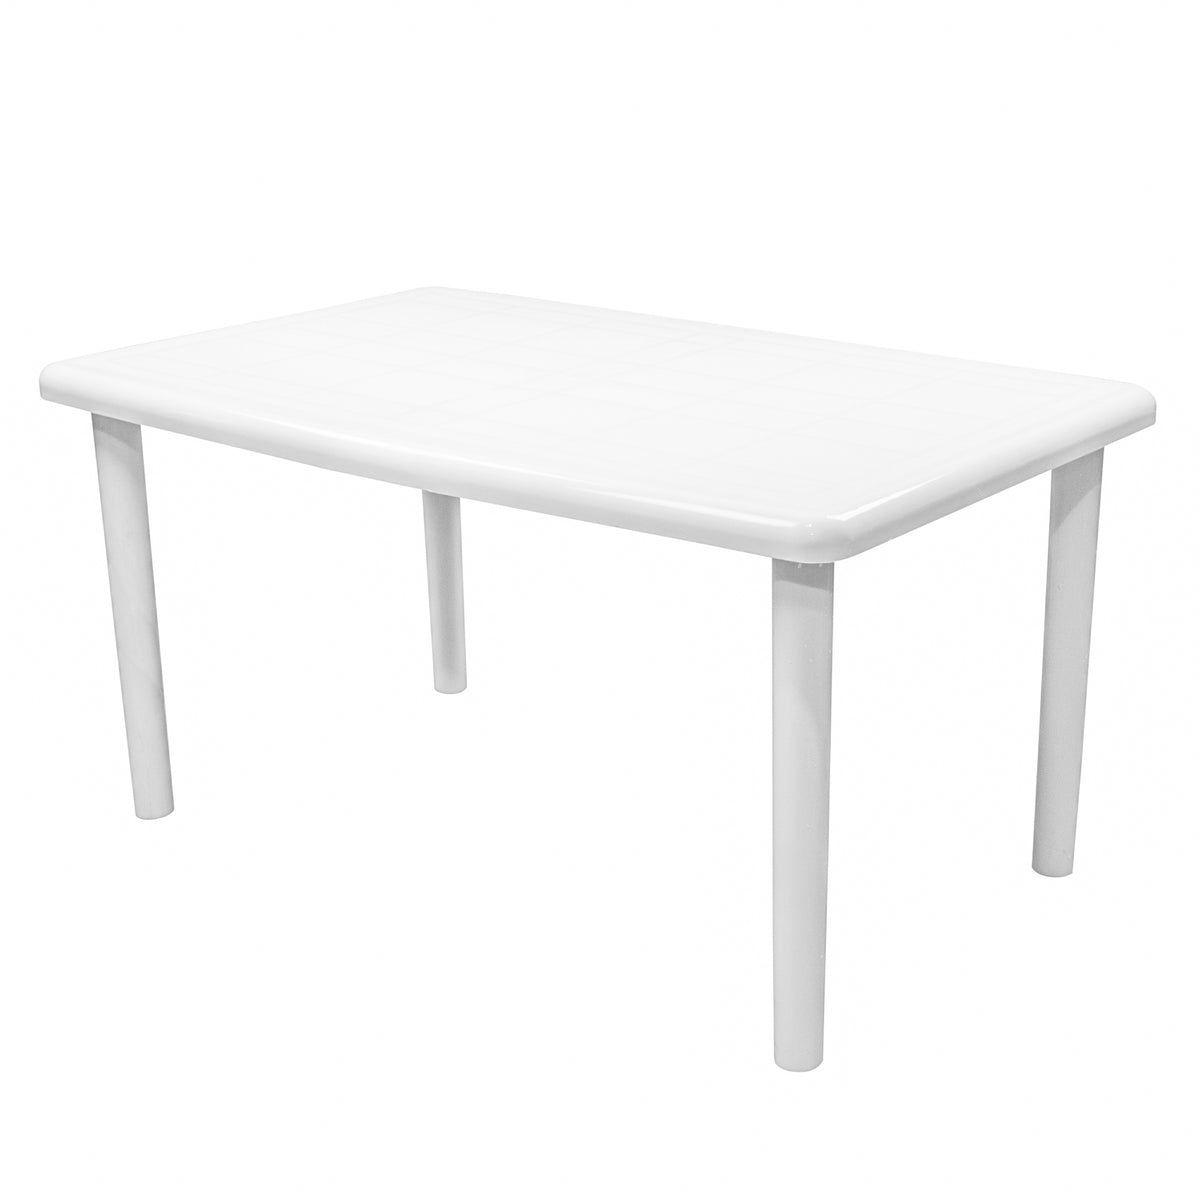 Resol Olot Outdoor Rectangular Garden Table - White Plastic - 140 x 90cm